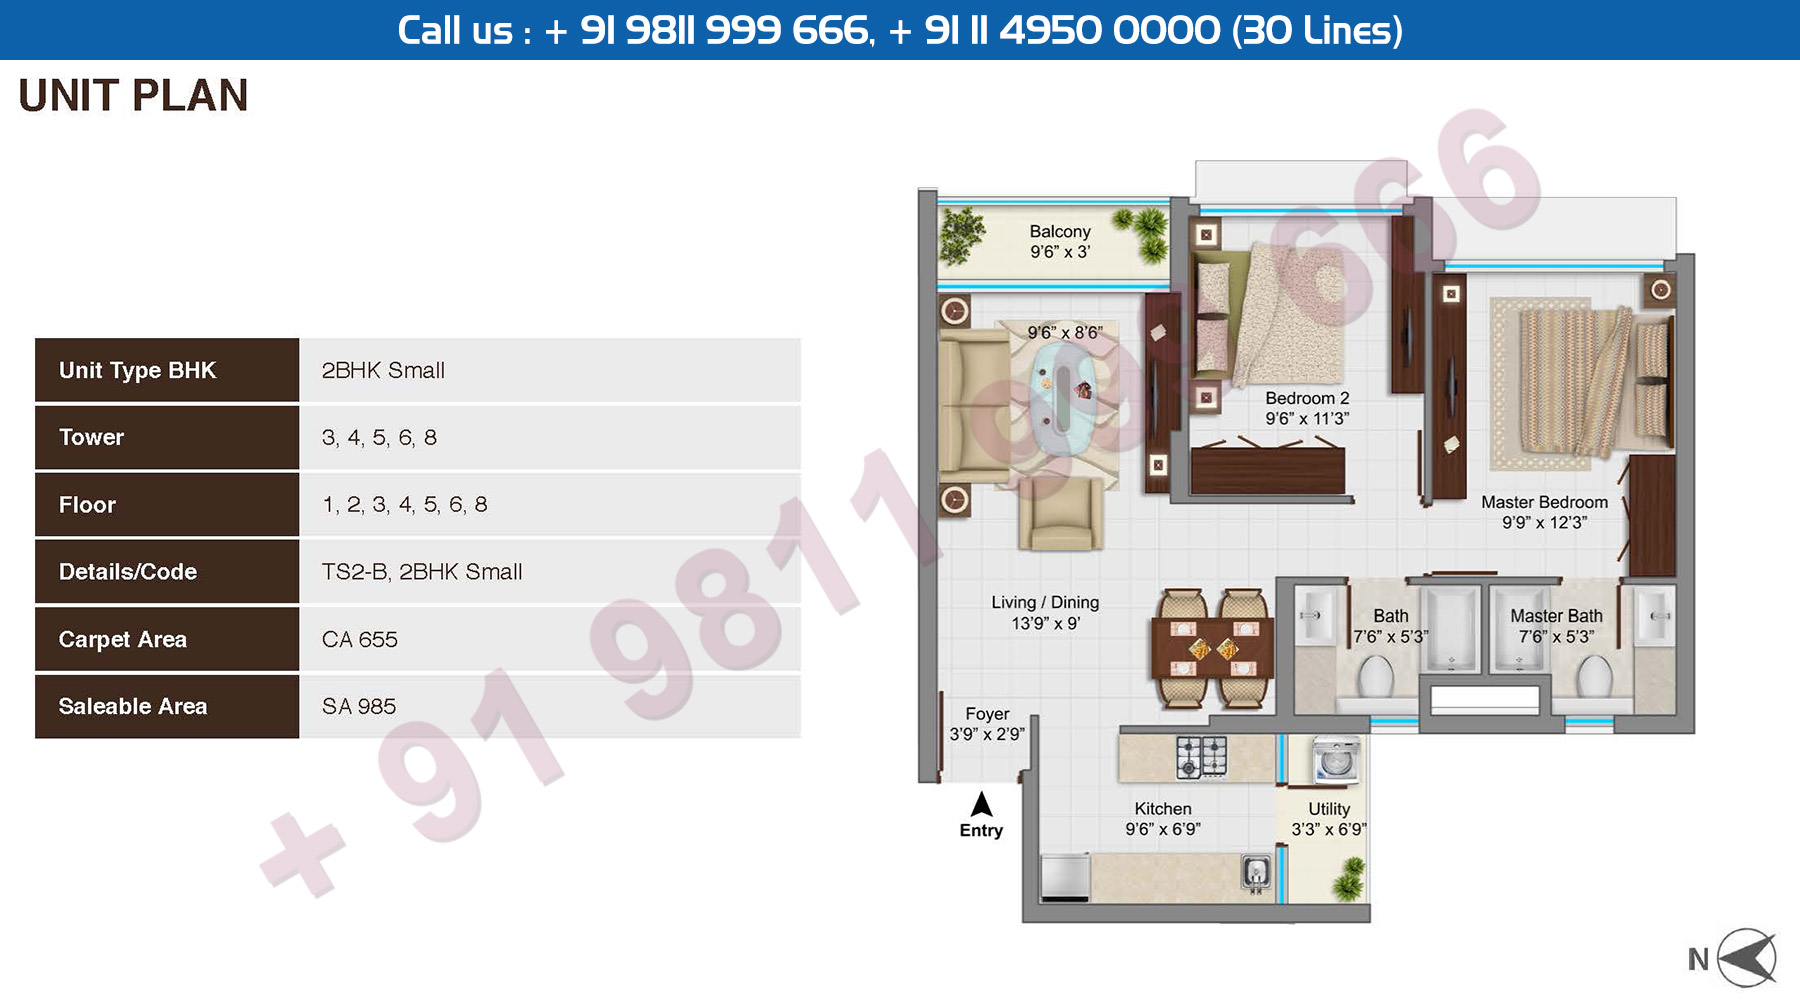 2 BHK Small Type B : 985 Sq.Ft.